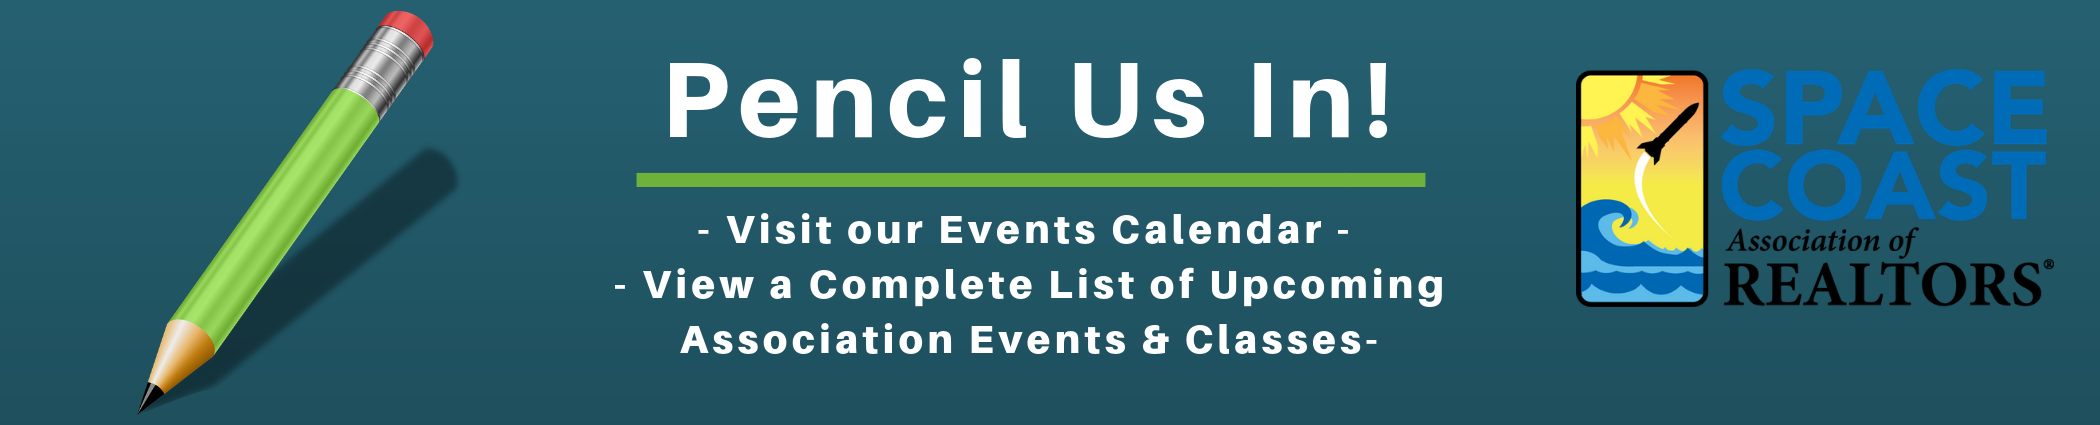 Space Coast Association of REALTORS® Events Calendar